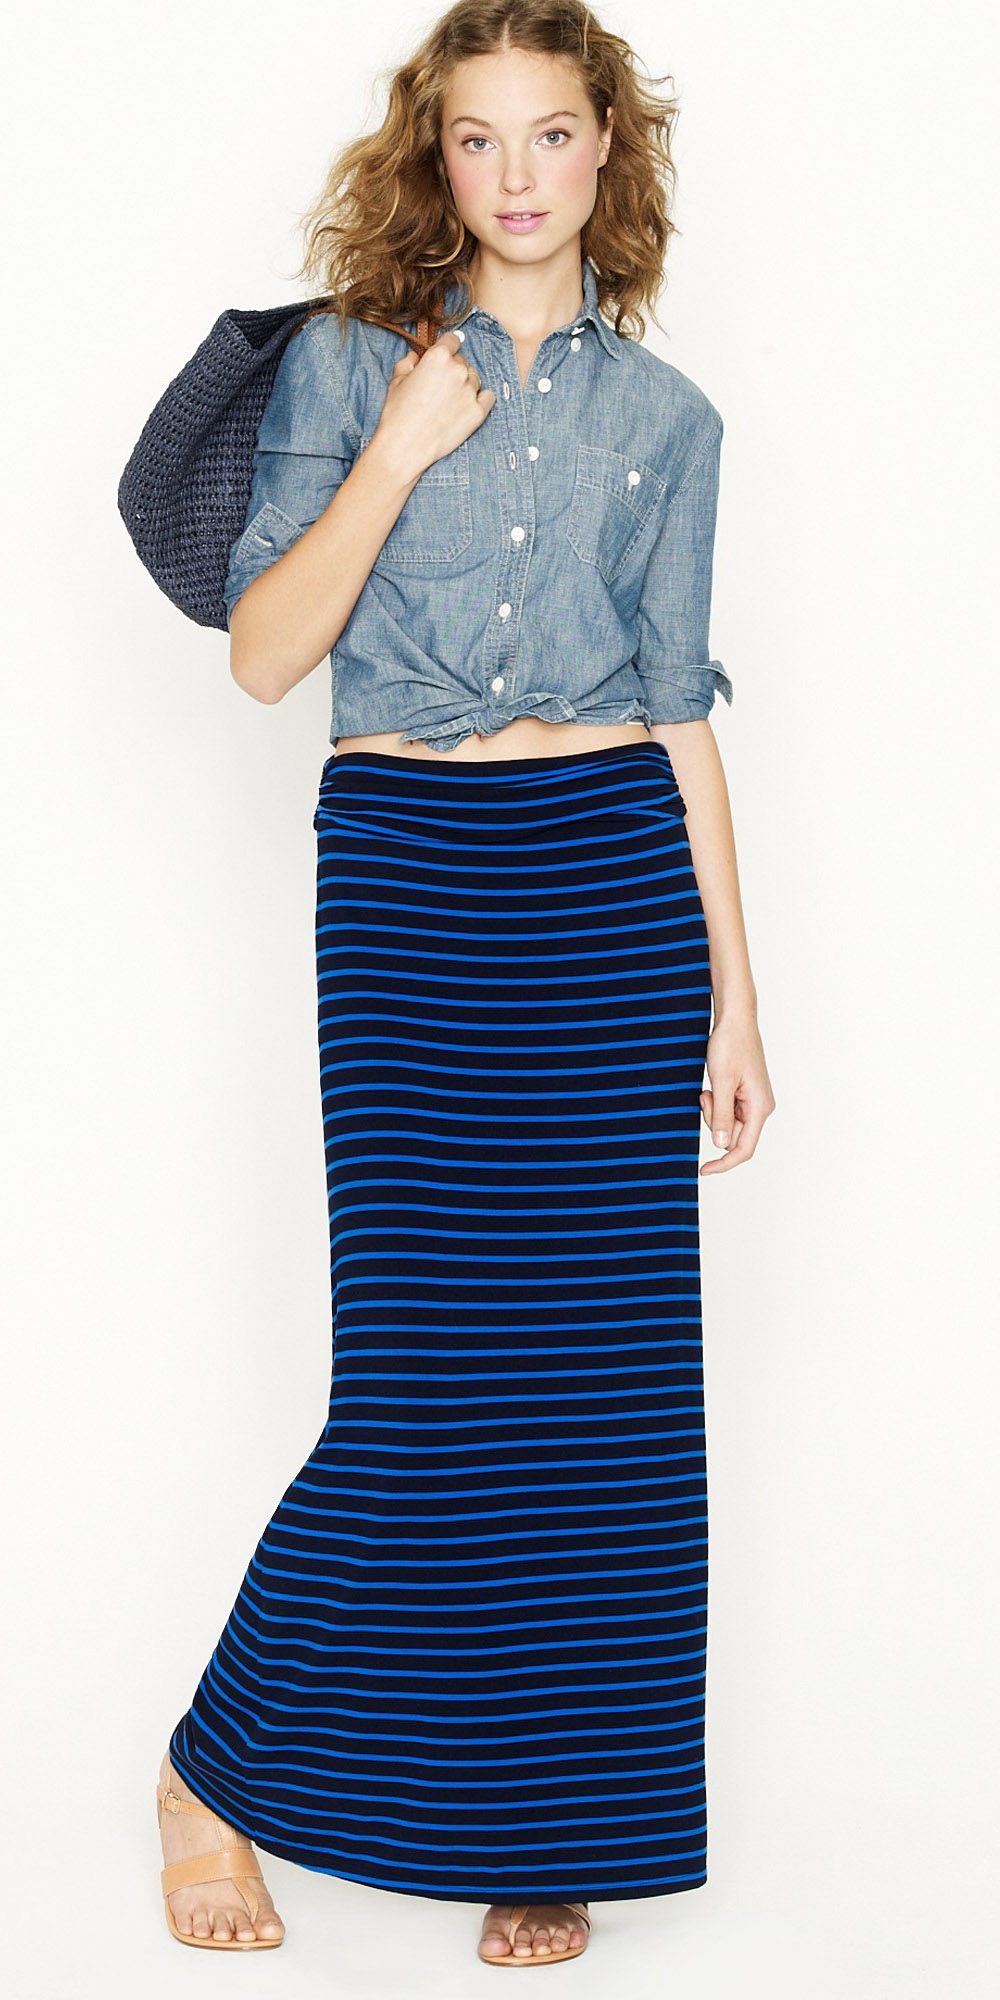 blue-navy-maxi-skirt-stripe-blue-med-collared-shirt-jcrew-hairr-spring-summer-weekend.jpeg